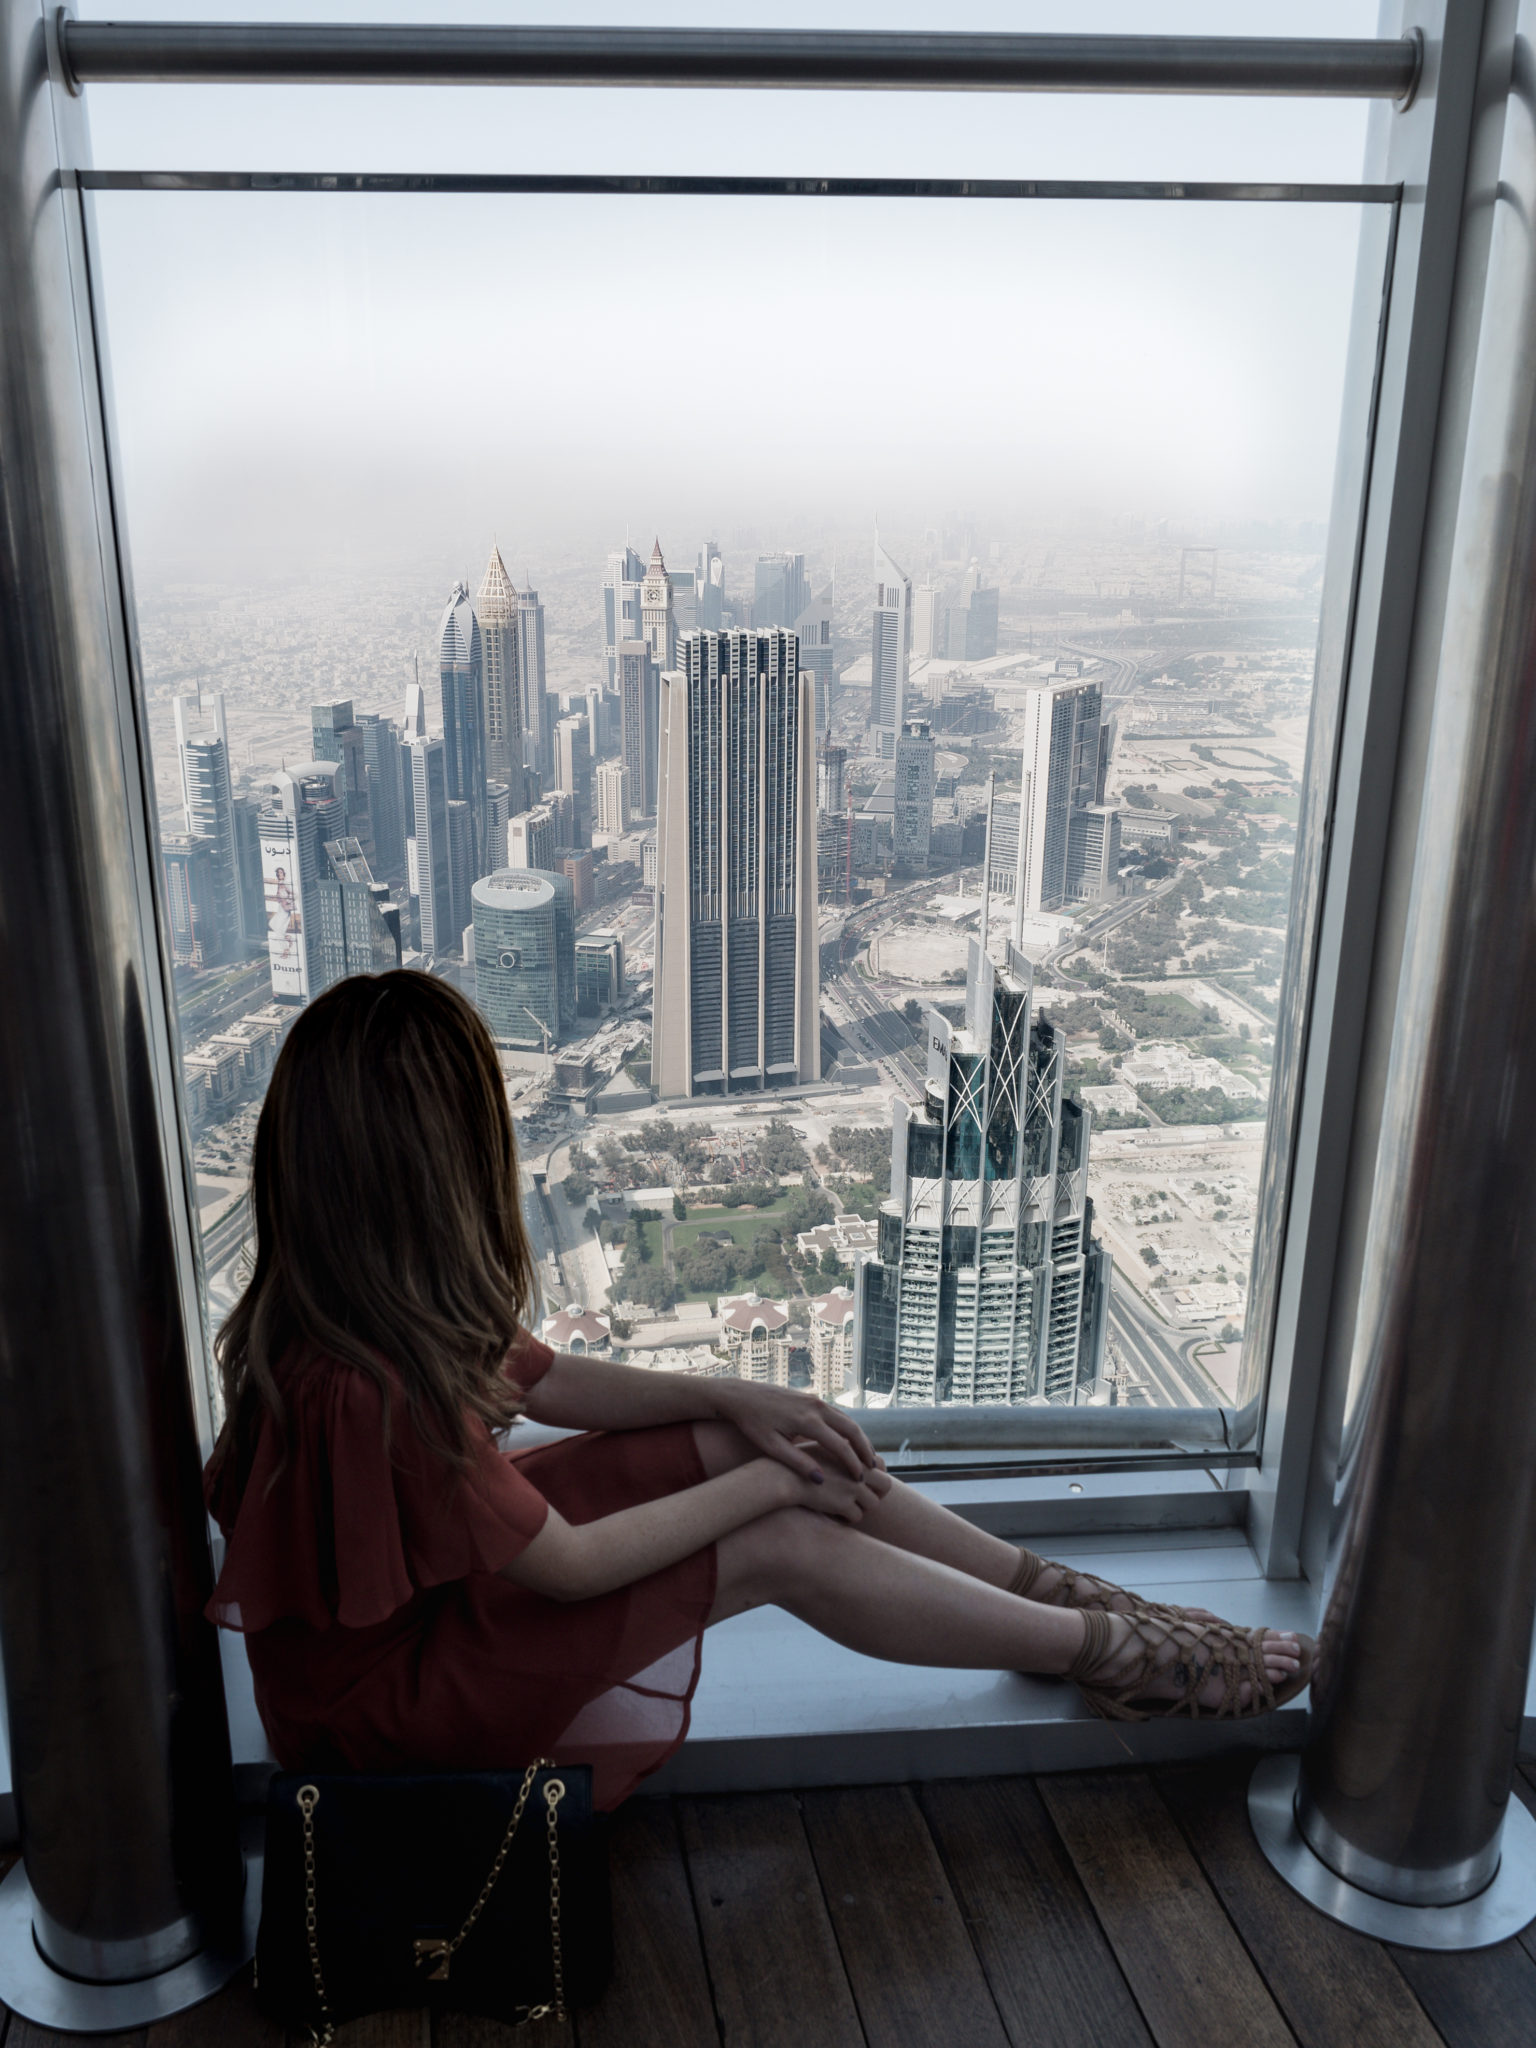 12 Unique Things to Do in Dubai | WORLD OF WANDERLUST